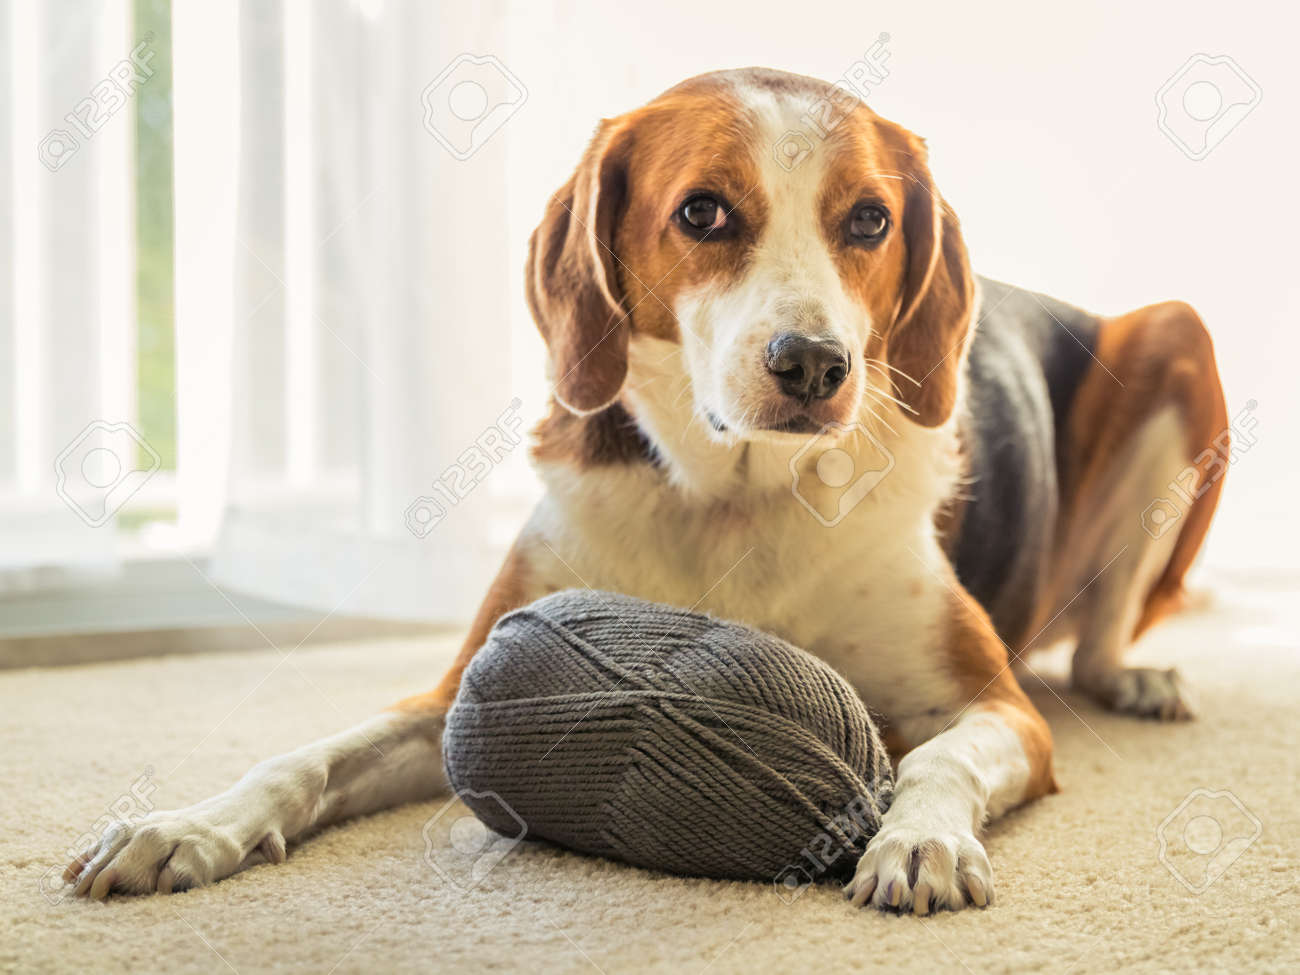 An adorable Beagle mixed dog is laying on the floor inside a house with a big ball of grey yarn. - 115211113